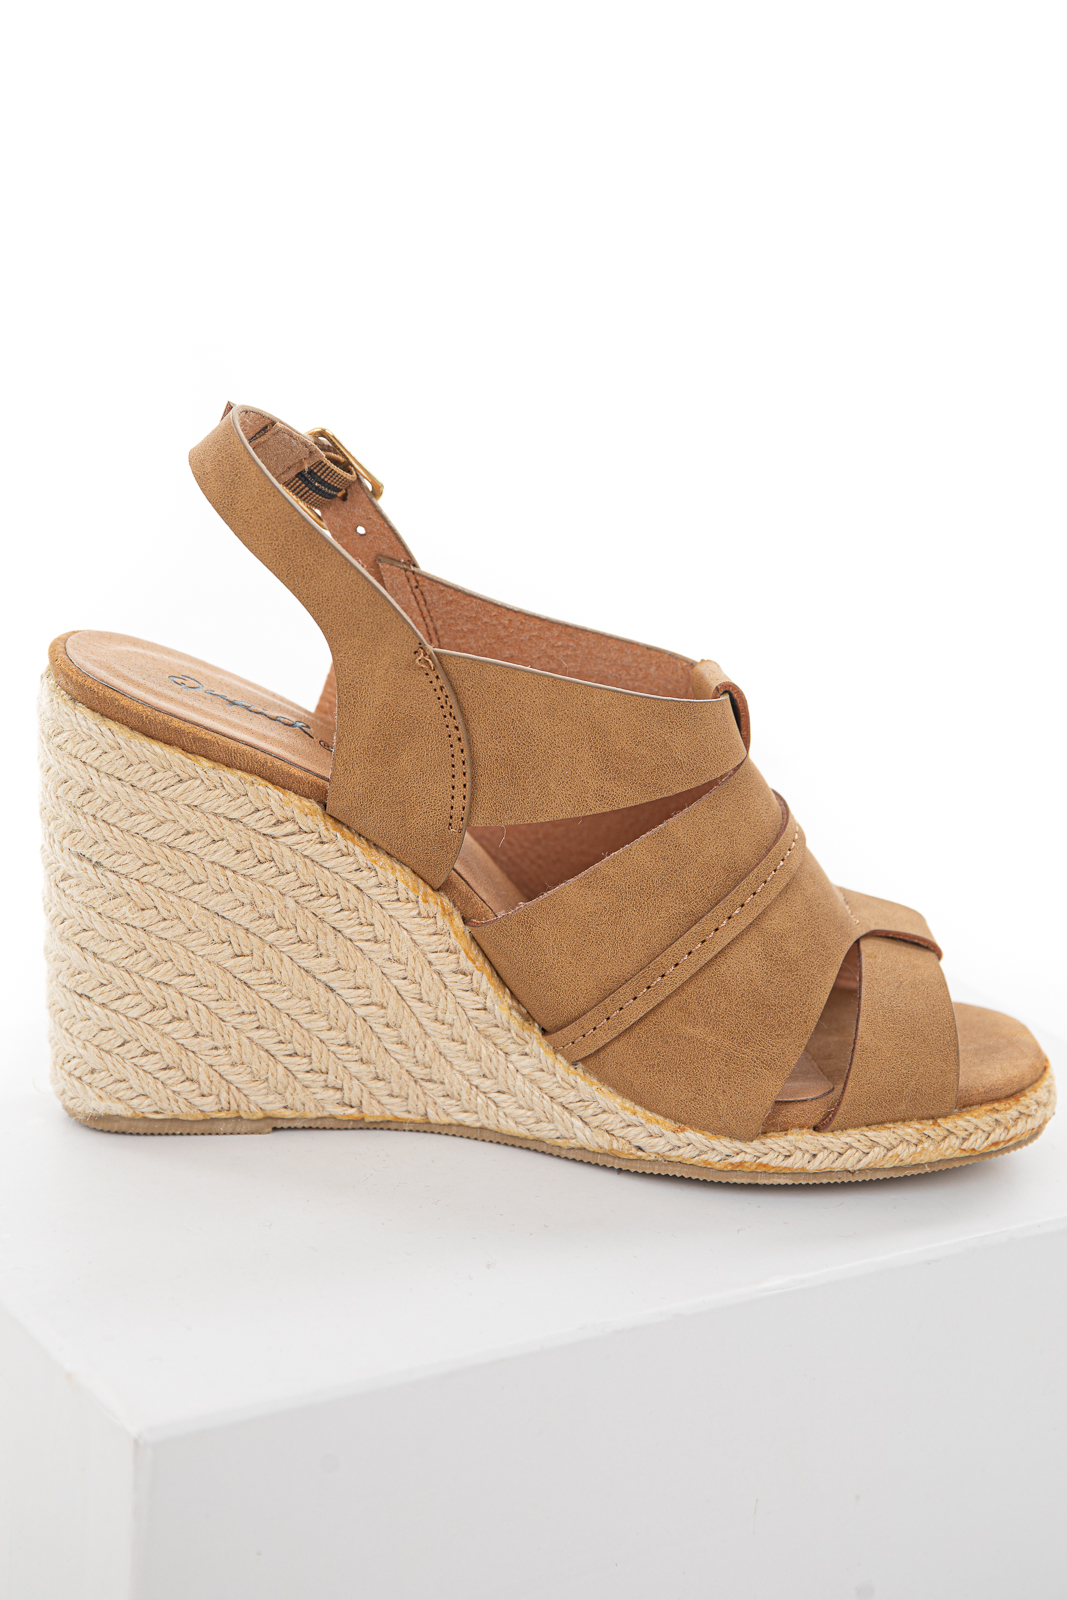 Caramel Espadrille Sandals with Open Toe and Ankle Strap